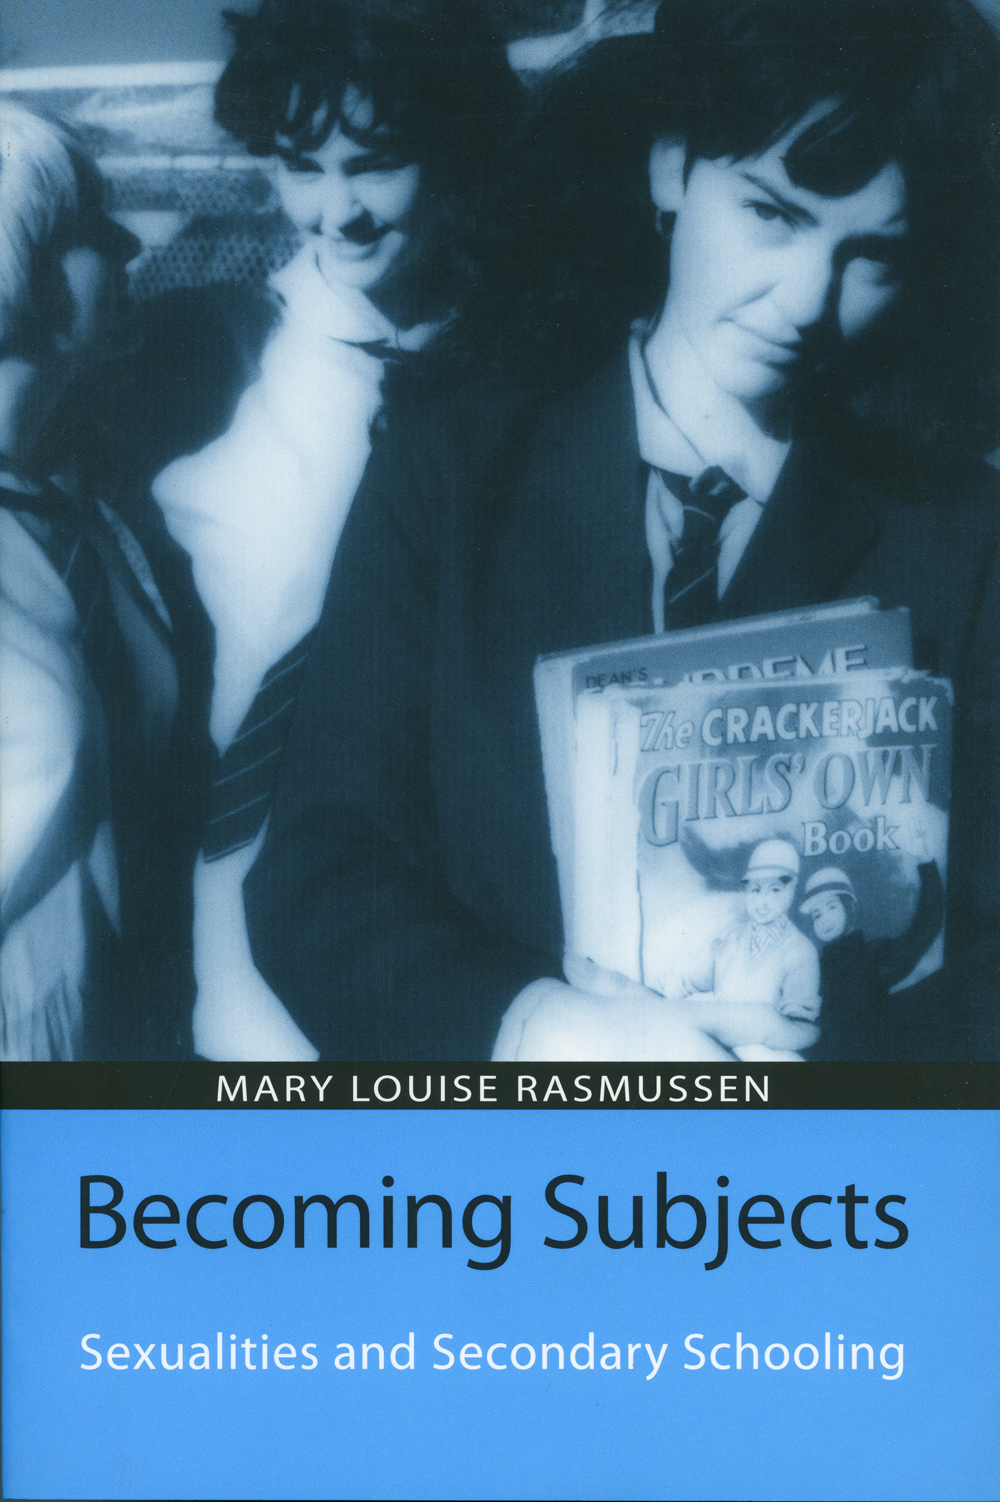 BECOMING-SUBJECTS-COVER.jpg